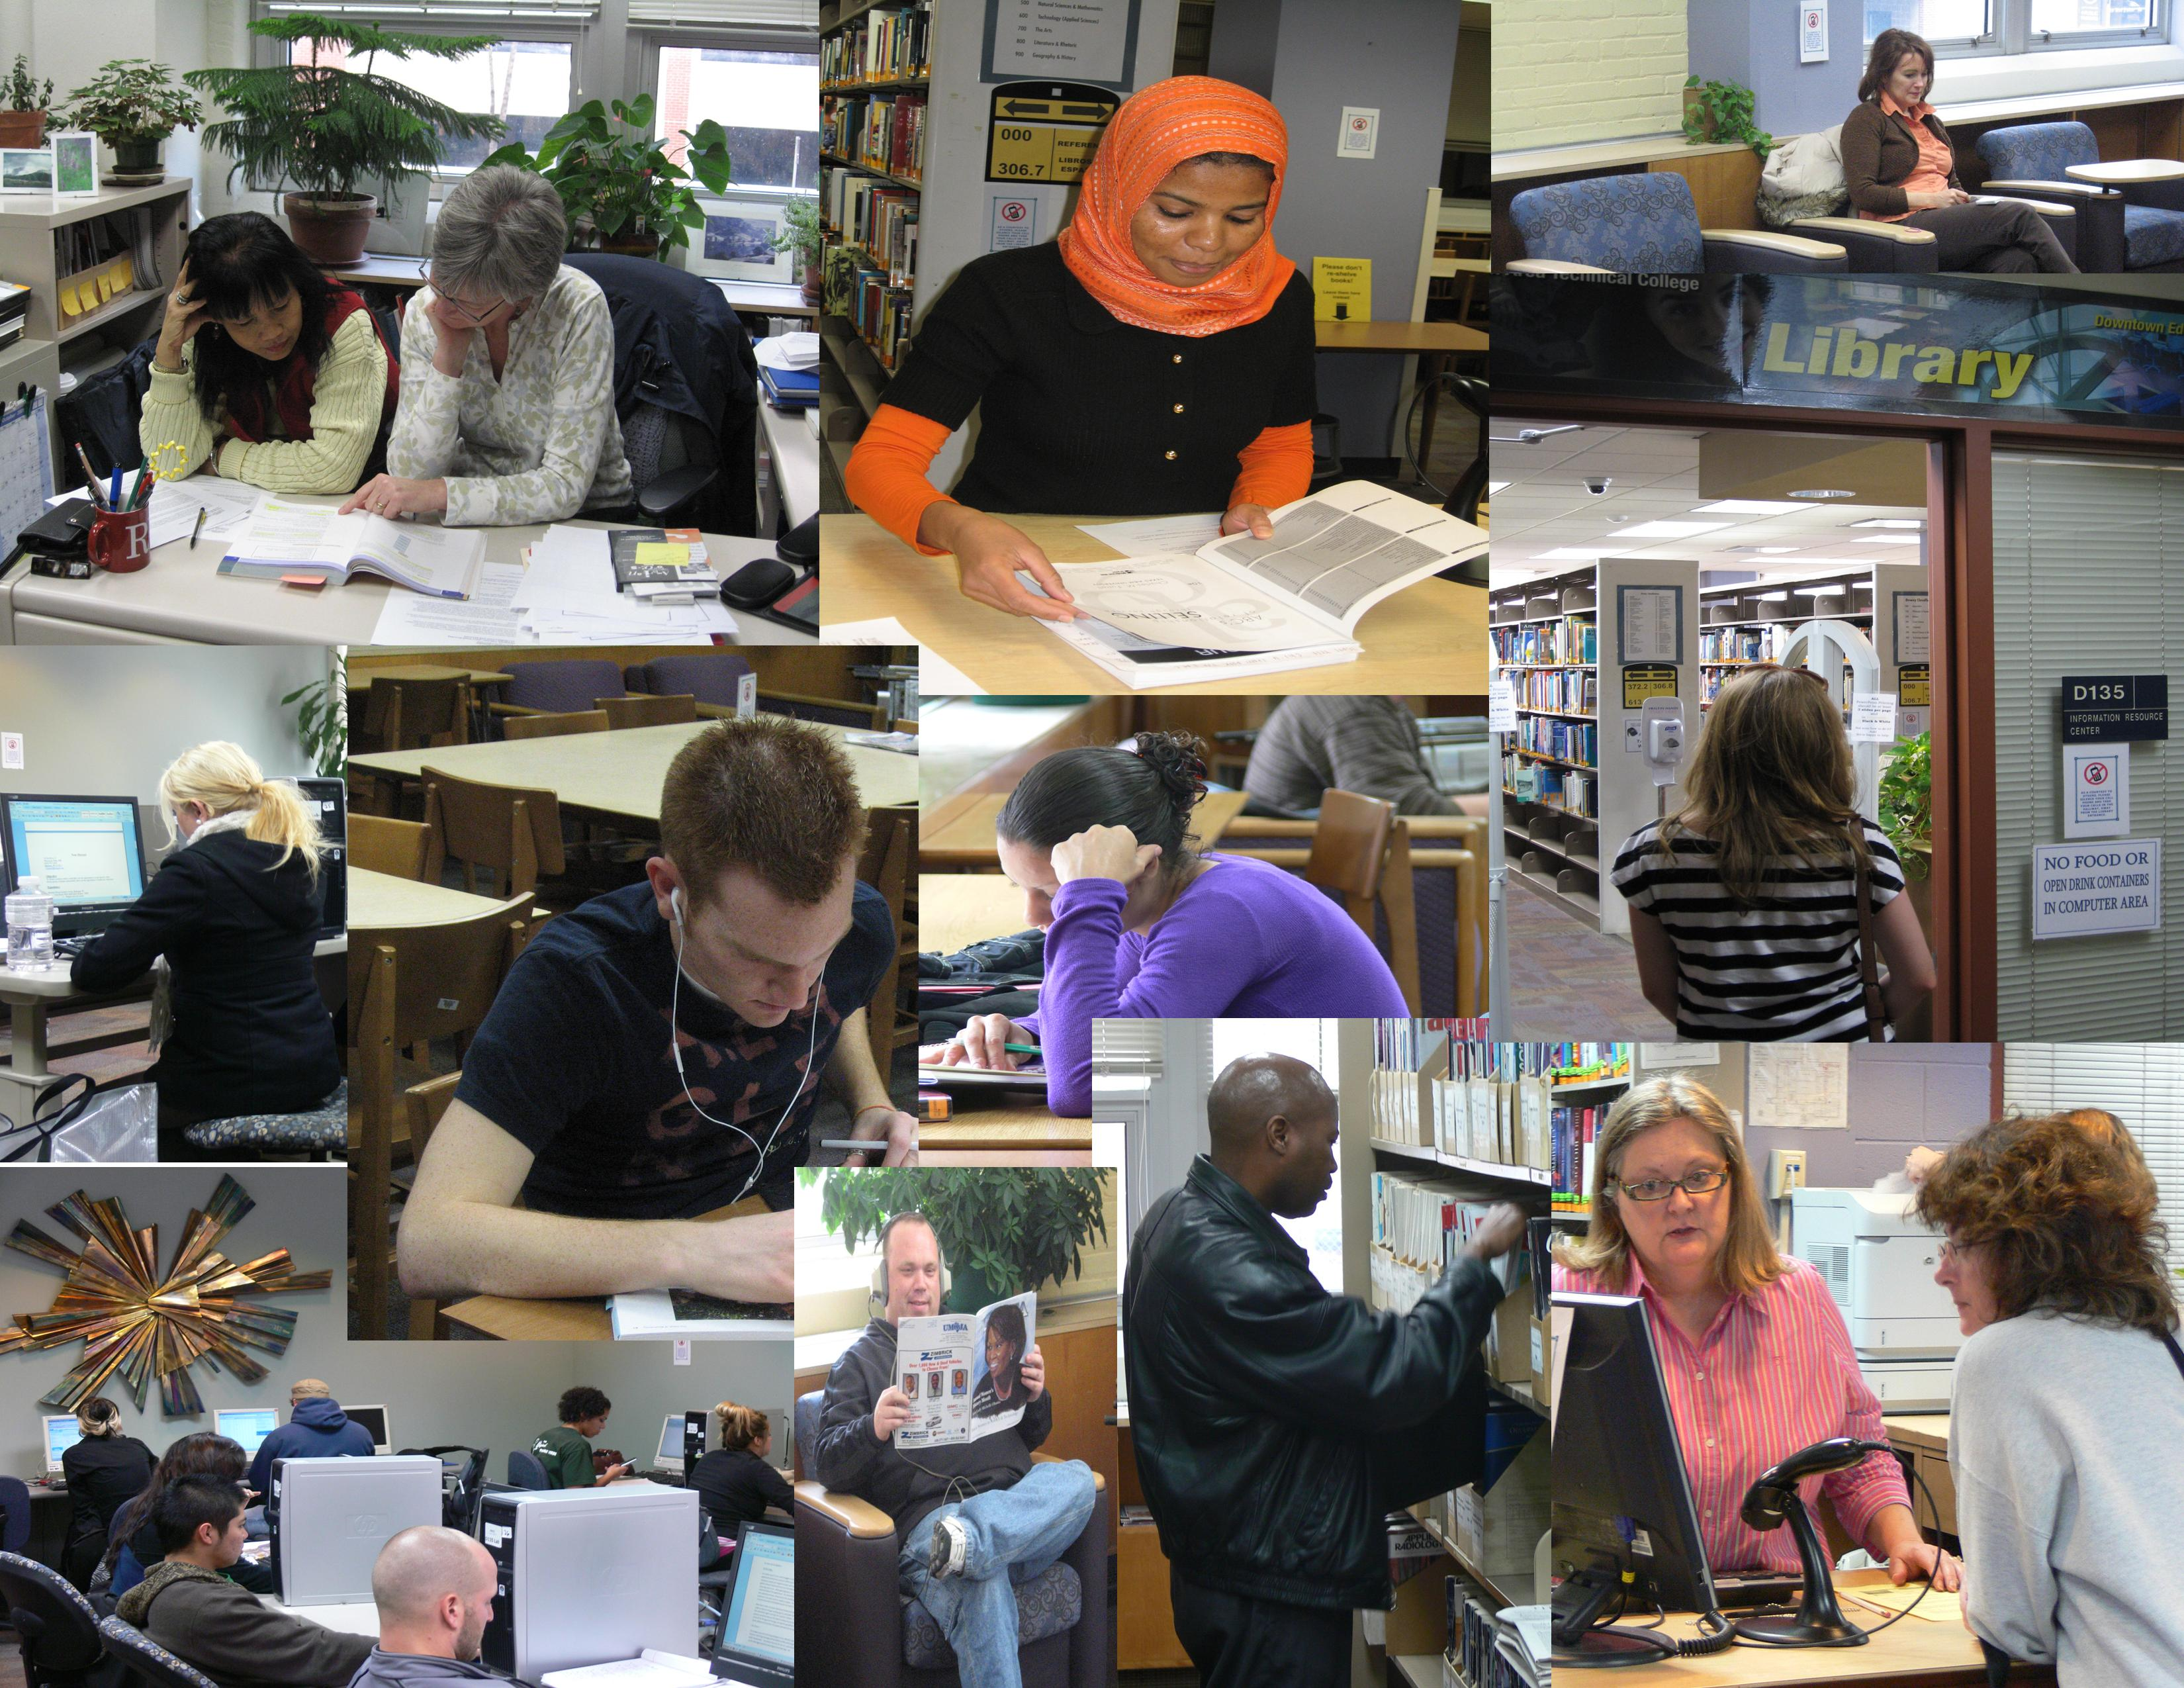 Collage of photos of students working in the Downtown library